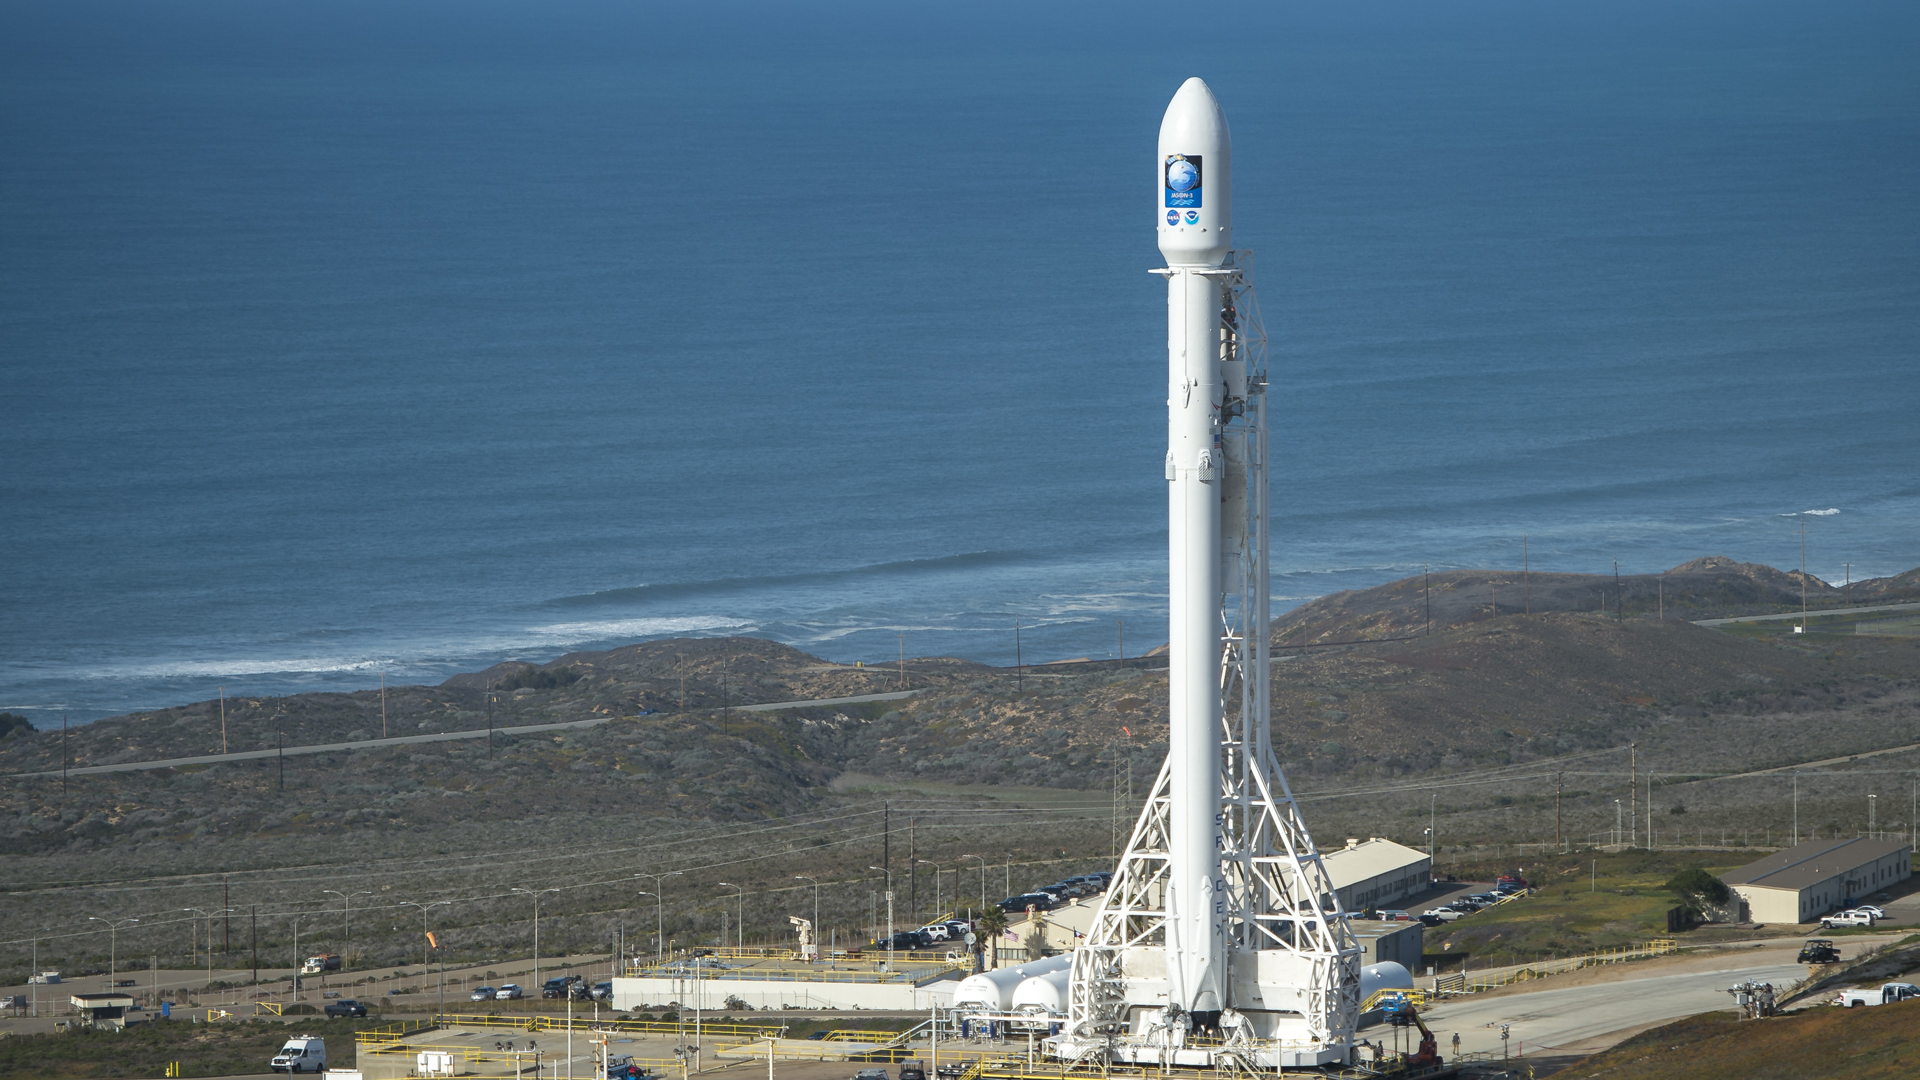 In this handout provided by NASA, the SpaceX Falcon 9 rocket is seen at Vandenberg Air Force Base Space Launch Complex 4 East on January 16, 2016. (Credit: Bill Ingalls/NASA via Getty Images)